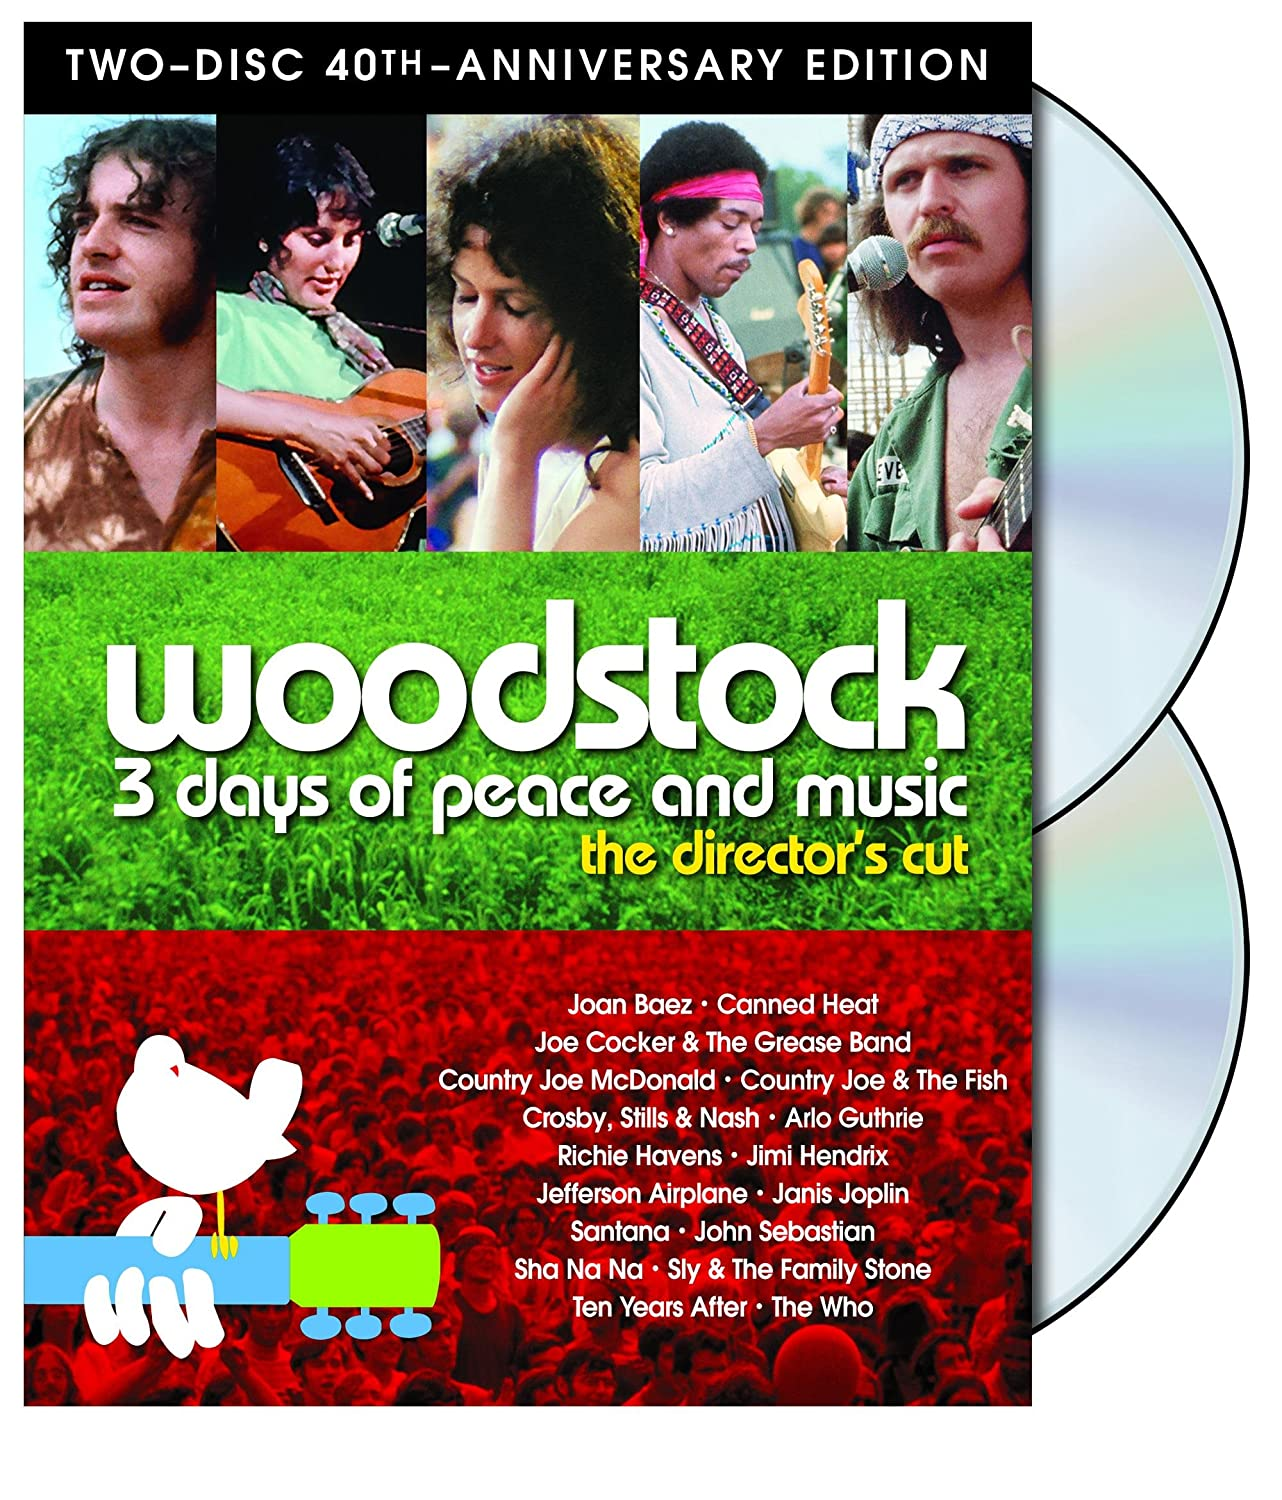 Amazon.com: Woodstock: Three Days of Peace & Music (Two-Disc 40th ...